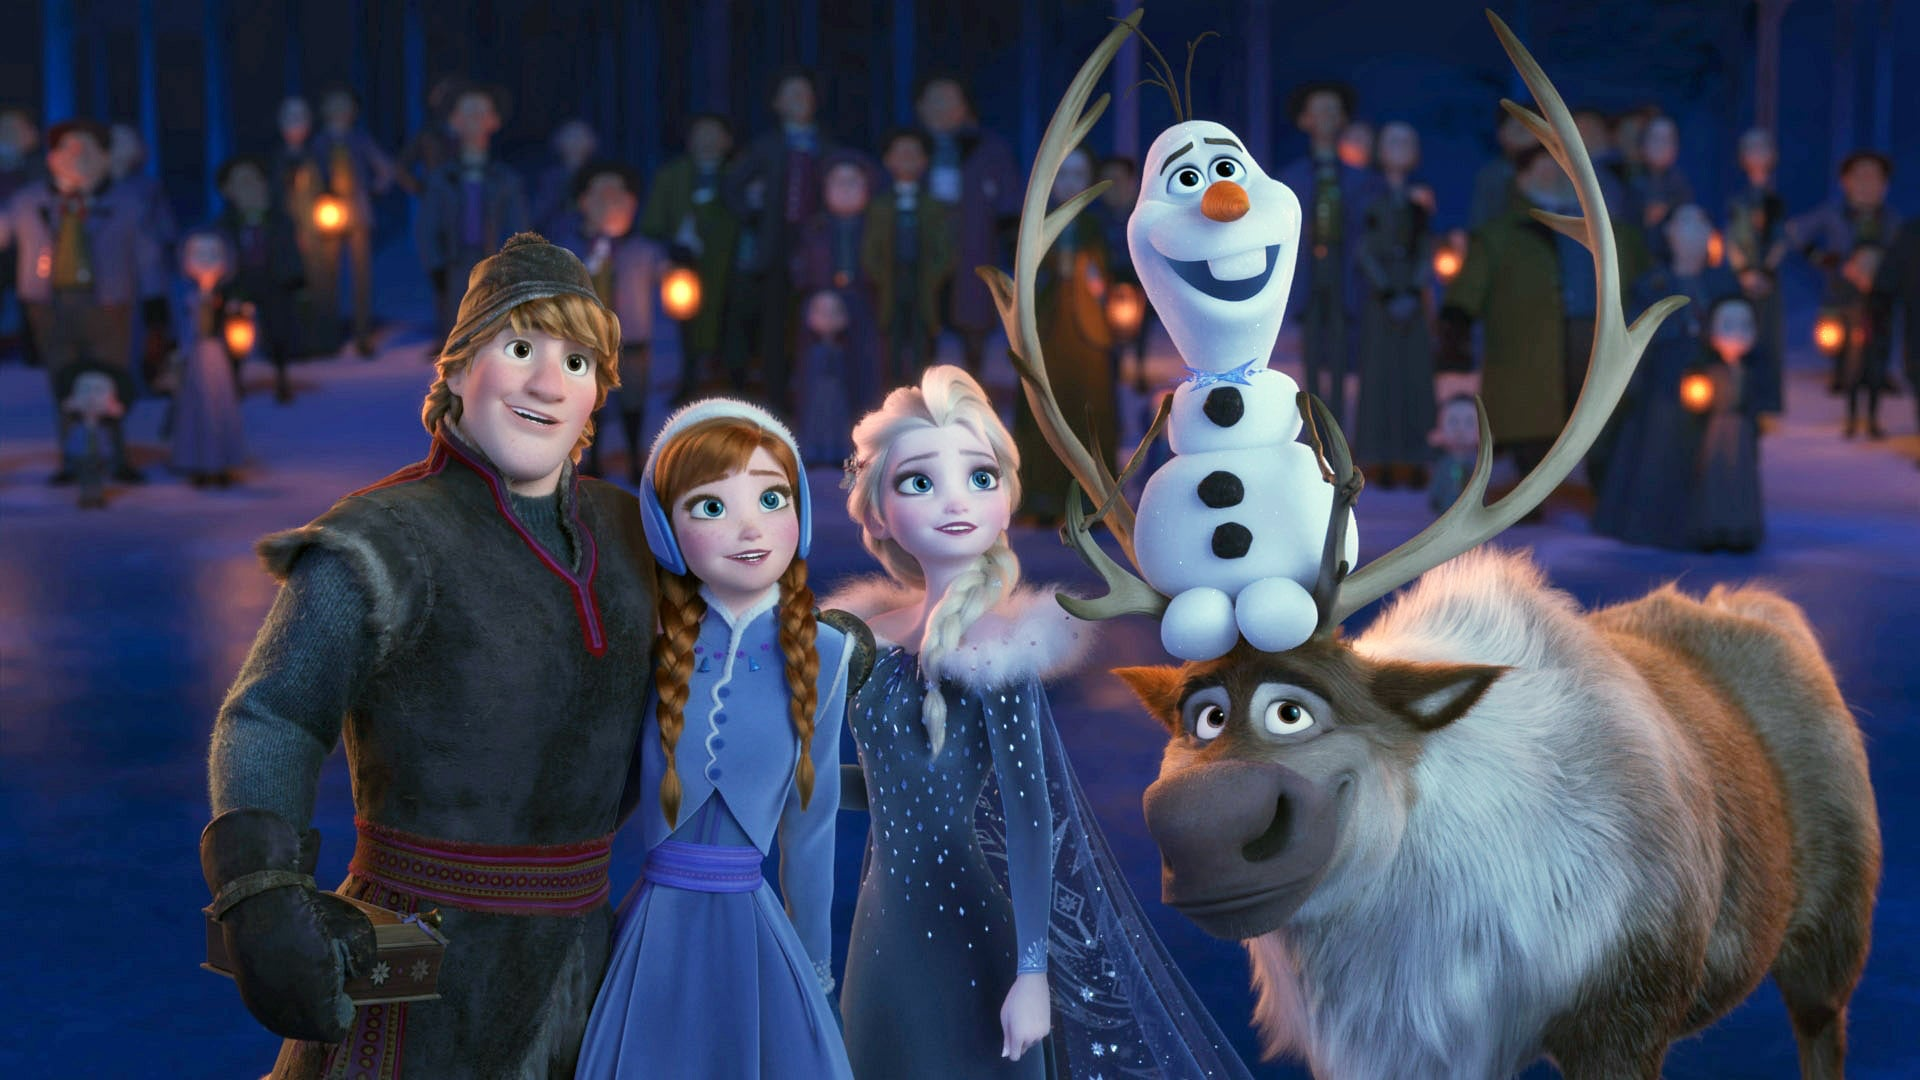 images of olaf from frozen